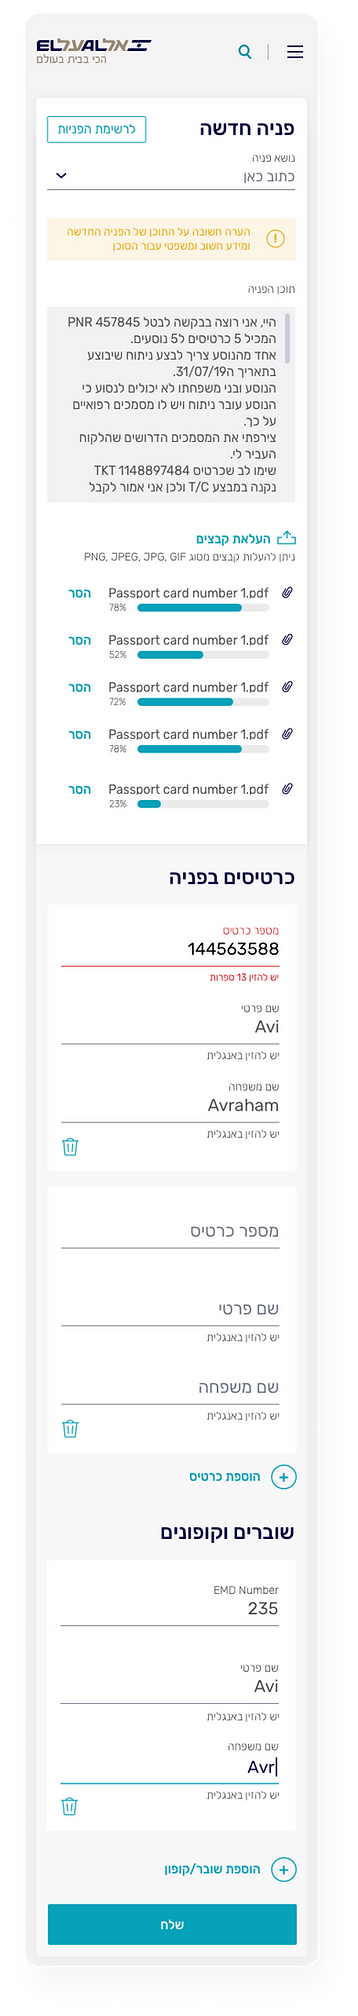 Elal_Agnents - Main page new Copy.png